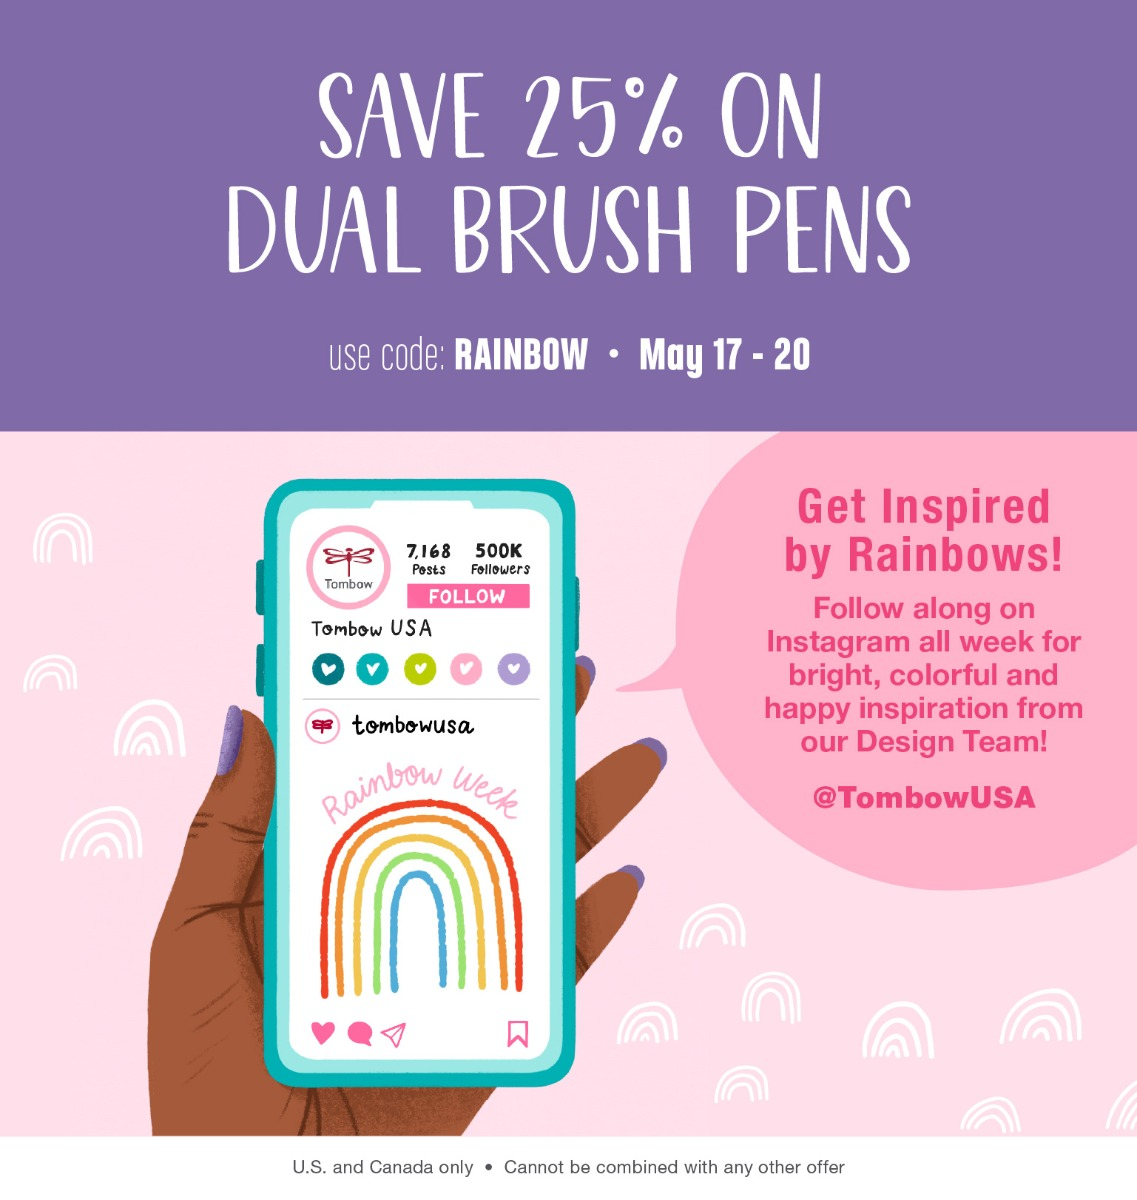 Save 25% on all Dual Brush Pens May 17 through 20. Use code RAINBOW at checkout. Discount cannot be combined with any other offers. United States and Canada Only.